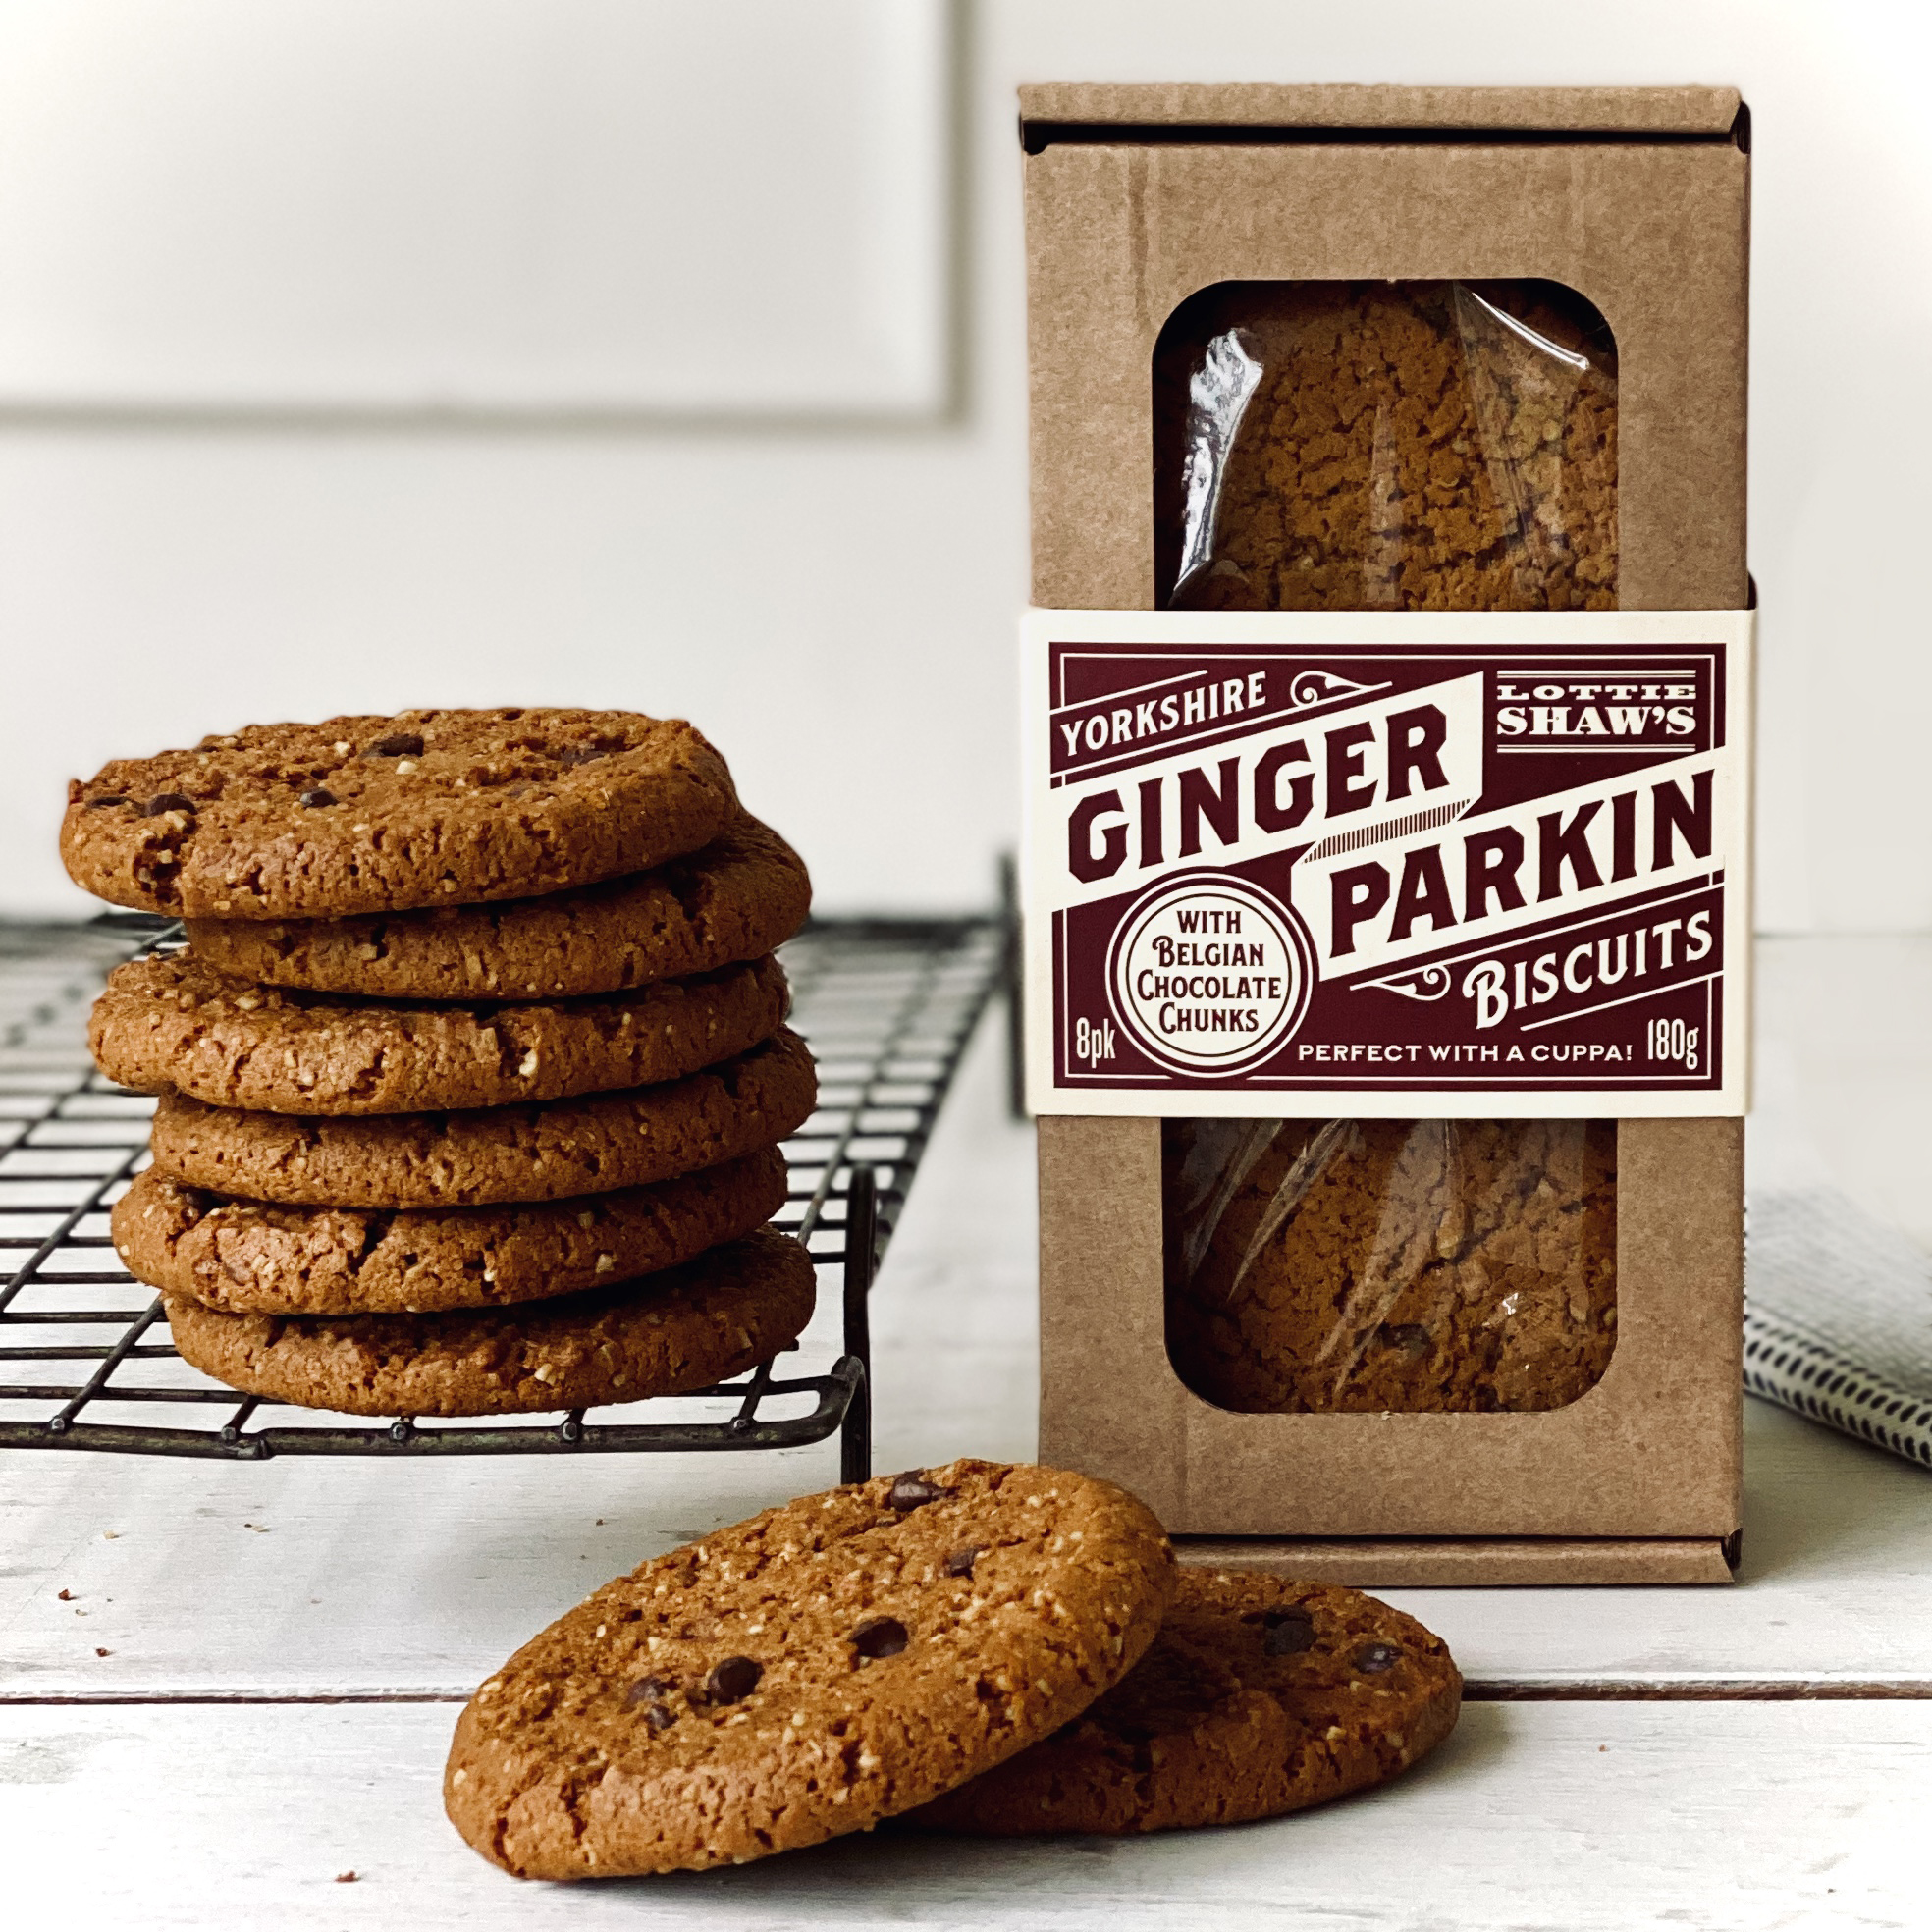 Lottie Shaw's Ginger Parkin with Belgian Chocolate Chunk Biscuits